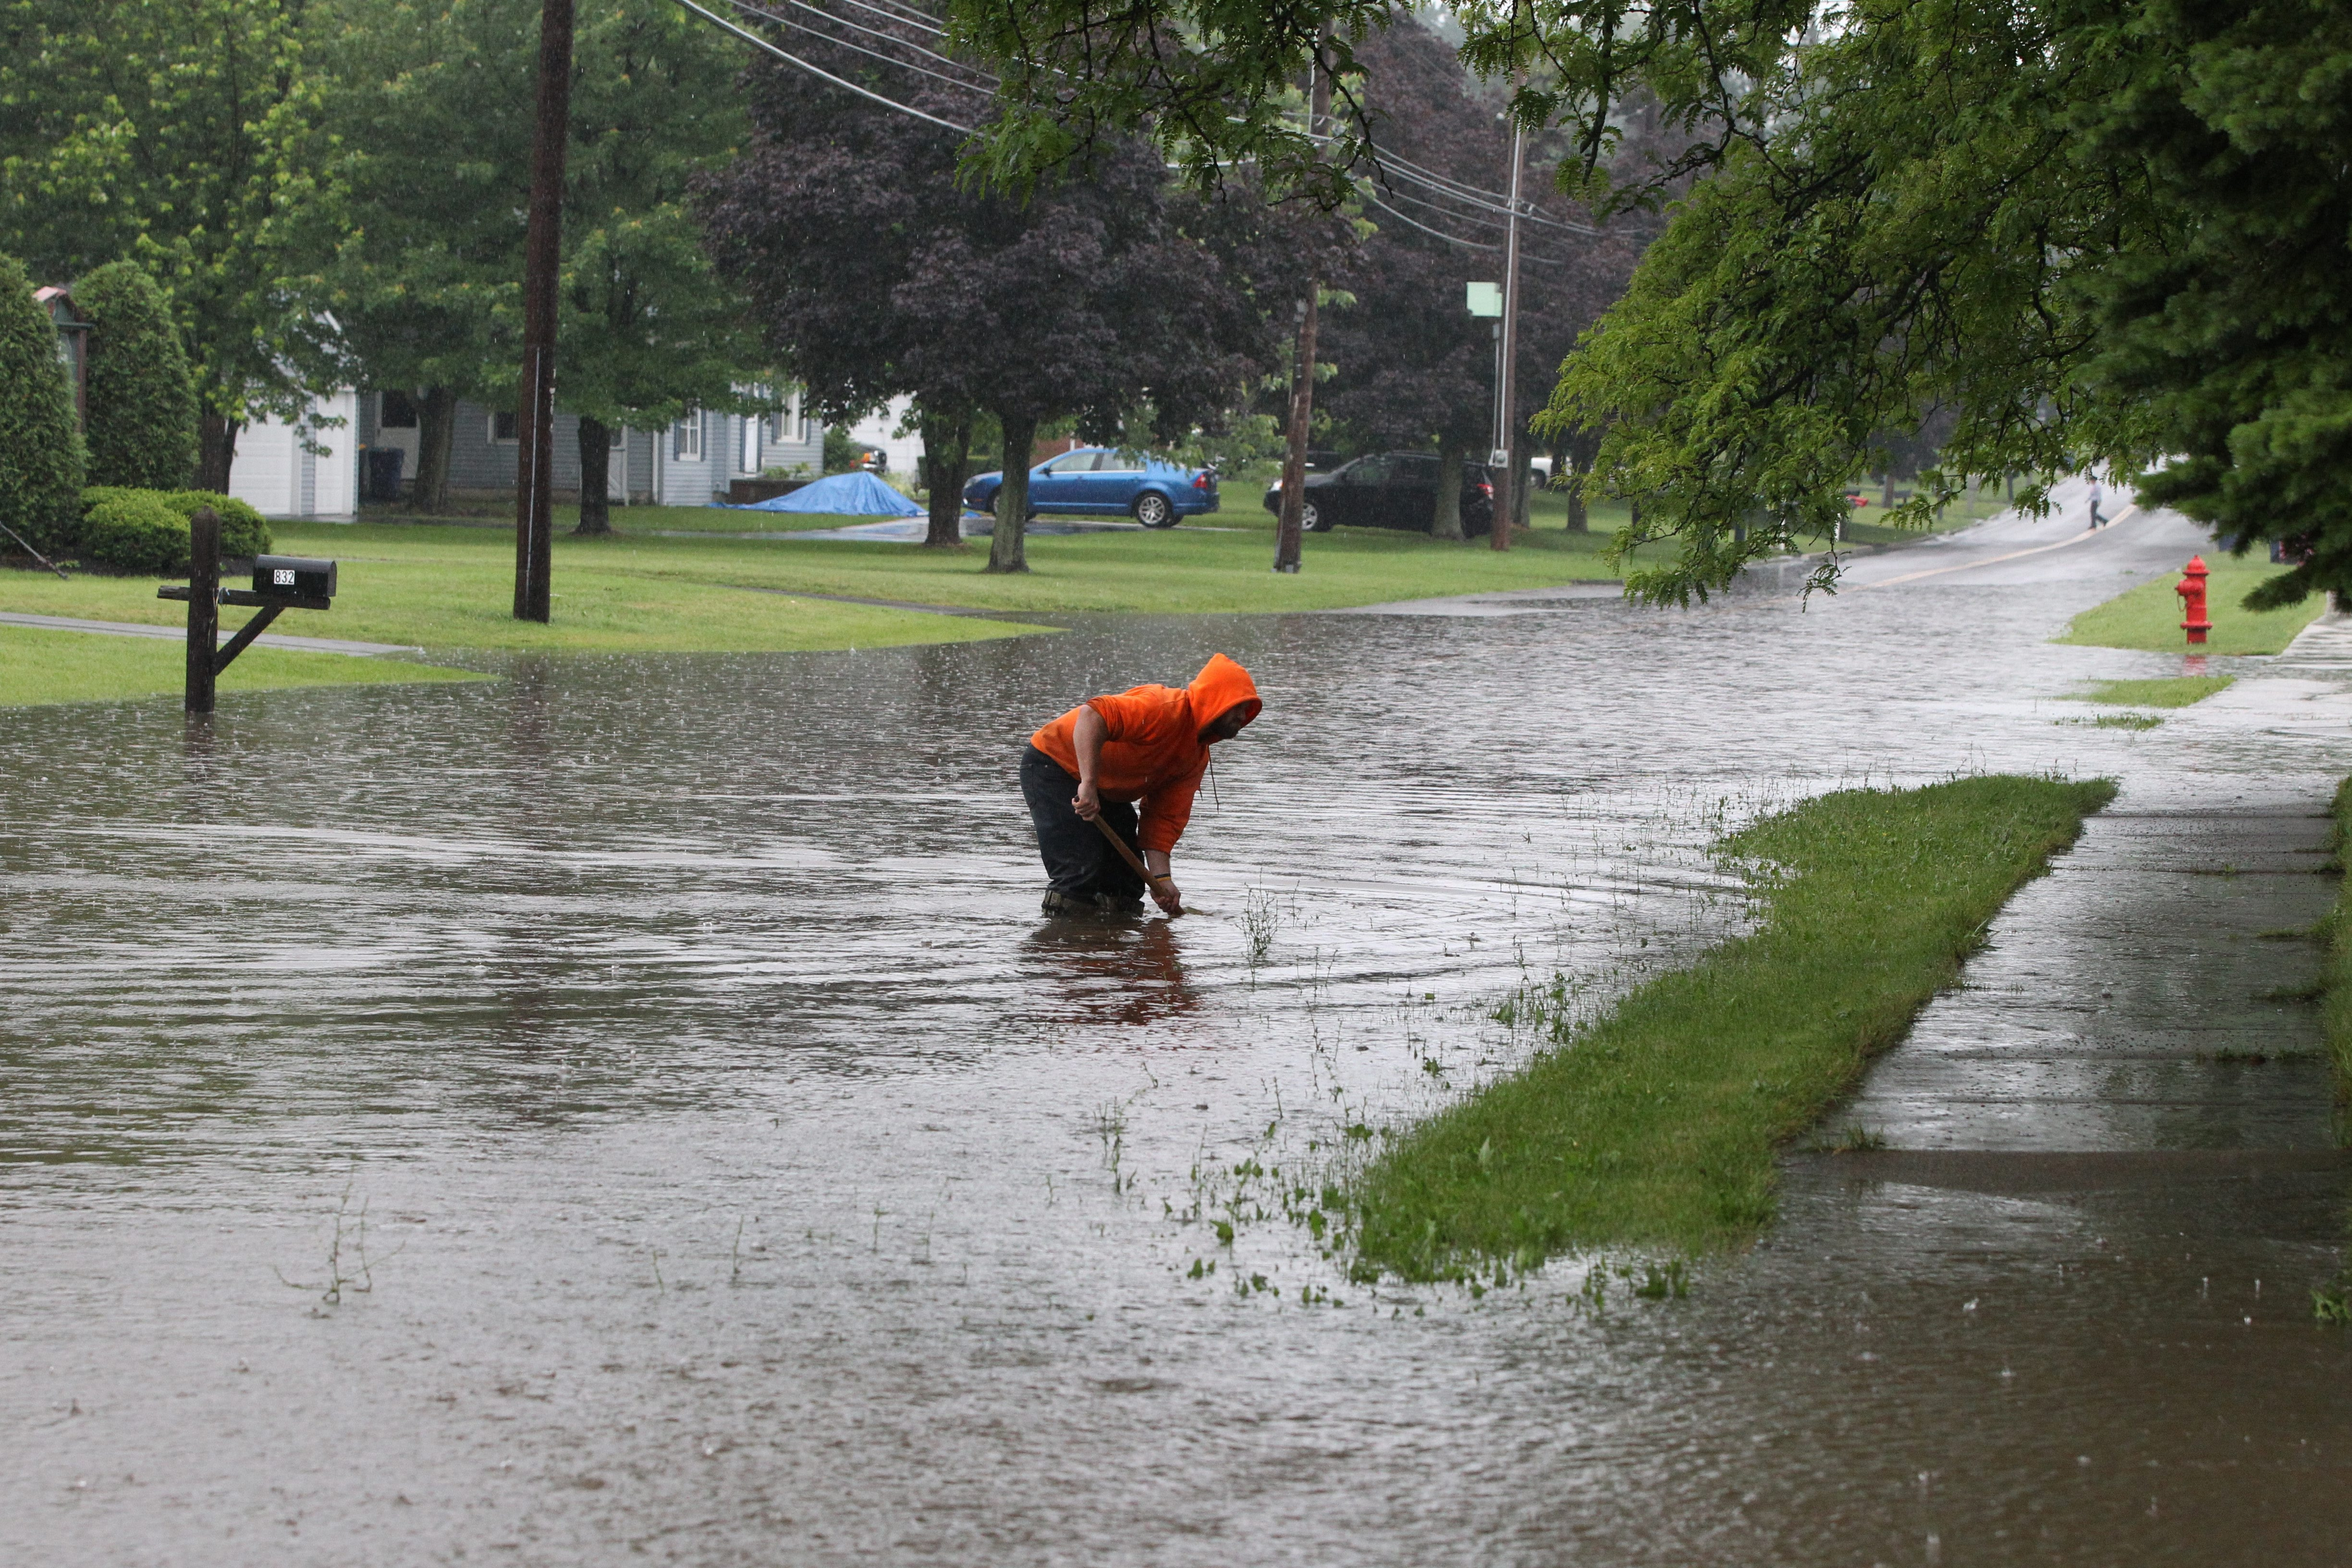 Mark Haenle , a city worker, cleans out the cogged drain on East High and Stevens in Lockport,NY on Friday, June 28, 2013.  {James P. McCoy/ Buffalo News}